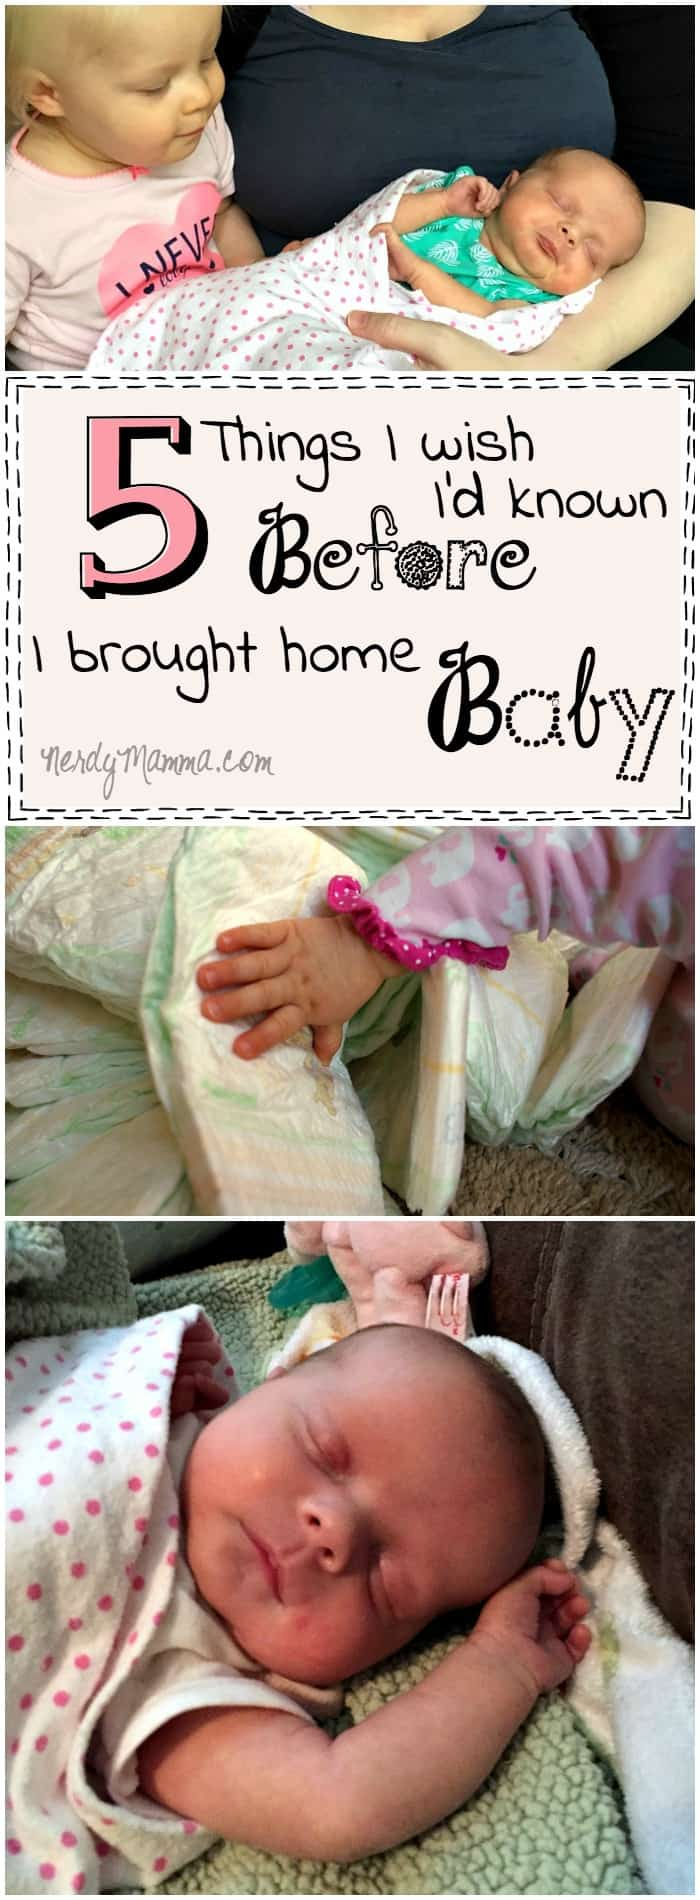 These 5 Things this mom wishes she'd known before she brought her baby home So precious...and so sweet. I kind of wish I'd known that, too...especially #2.